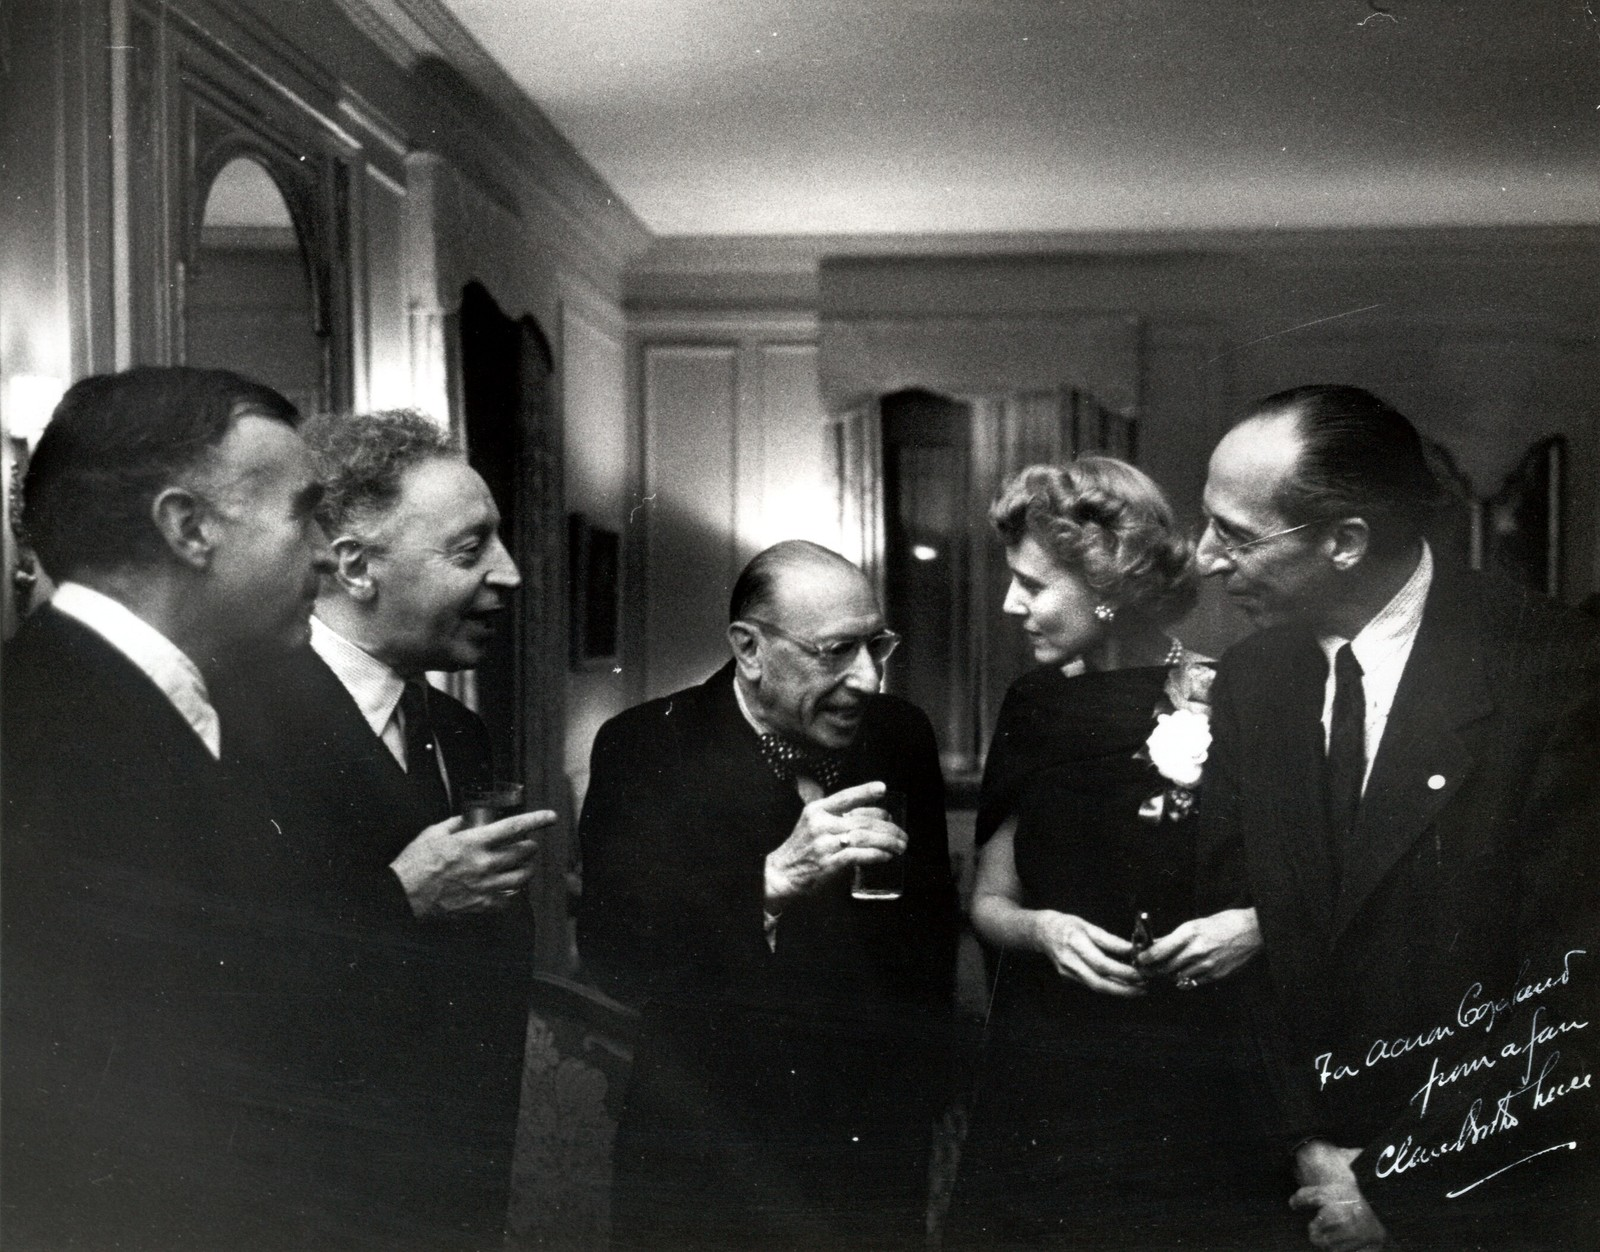 Caption: Carlos Chávez with Artur Rubinstein, Igor Stravinsky, Claire Booth Luce, and Aaron Copland